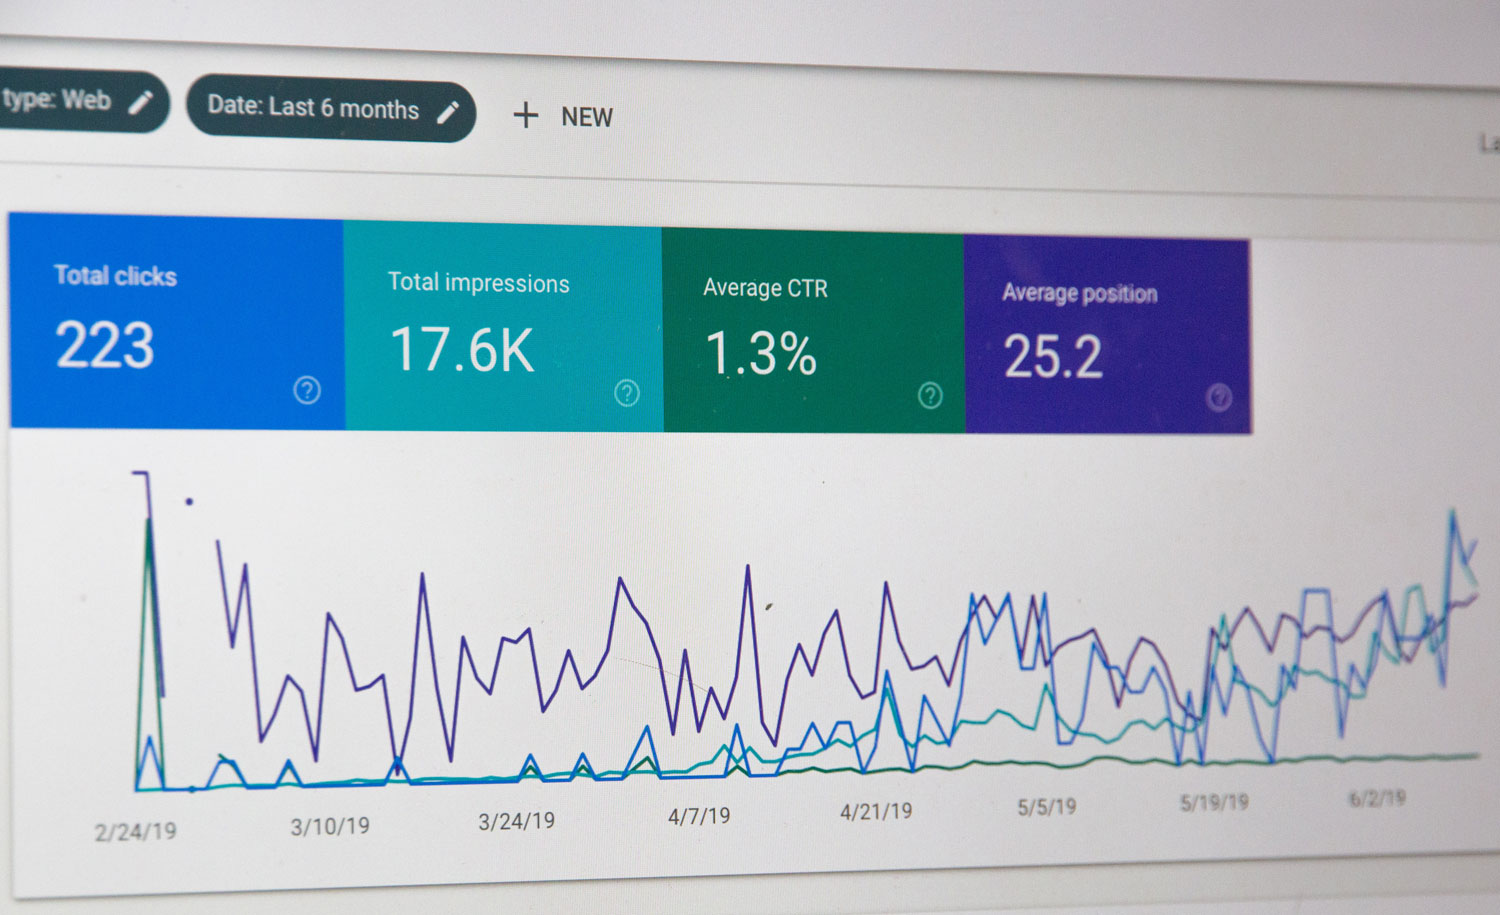 How to get access to influencer marketing metrics and drive results through Google Analytics and Everflow.